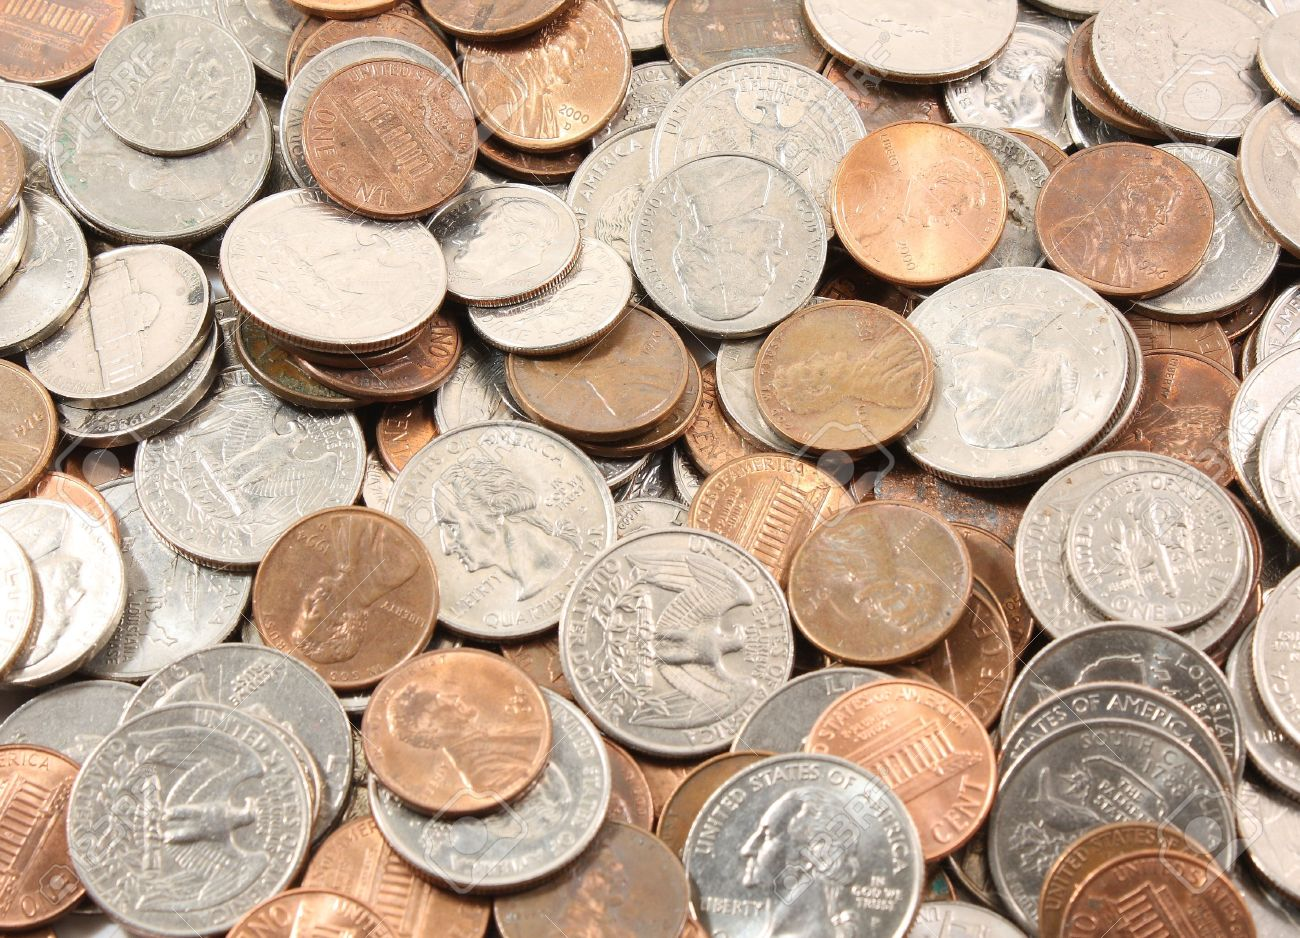 Background of US coins. Quarters, nickels, dimes, pennies.